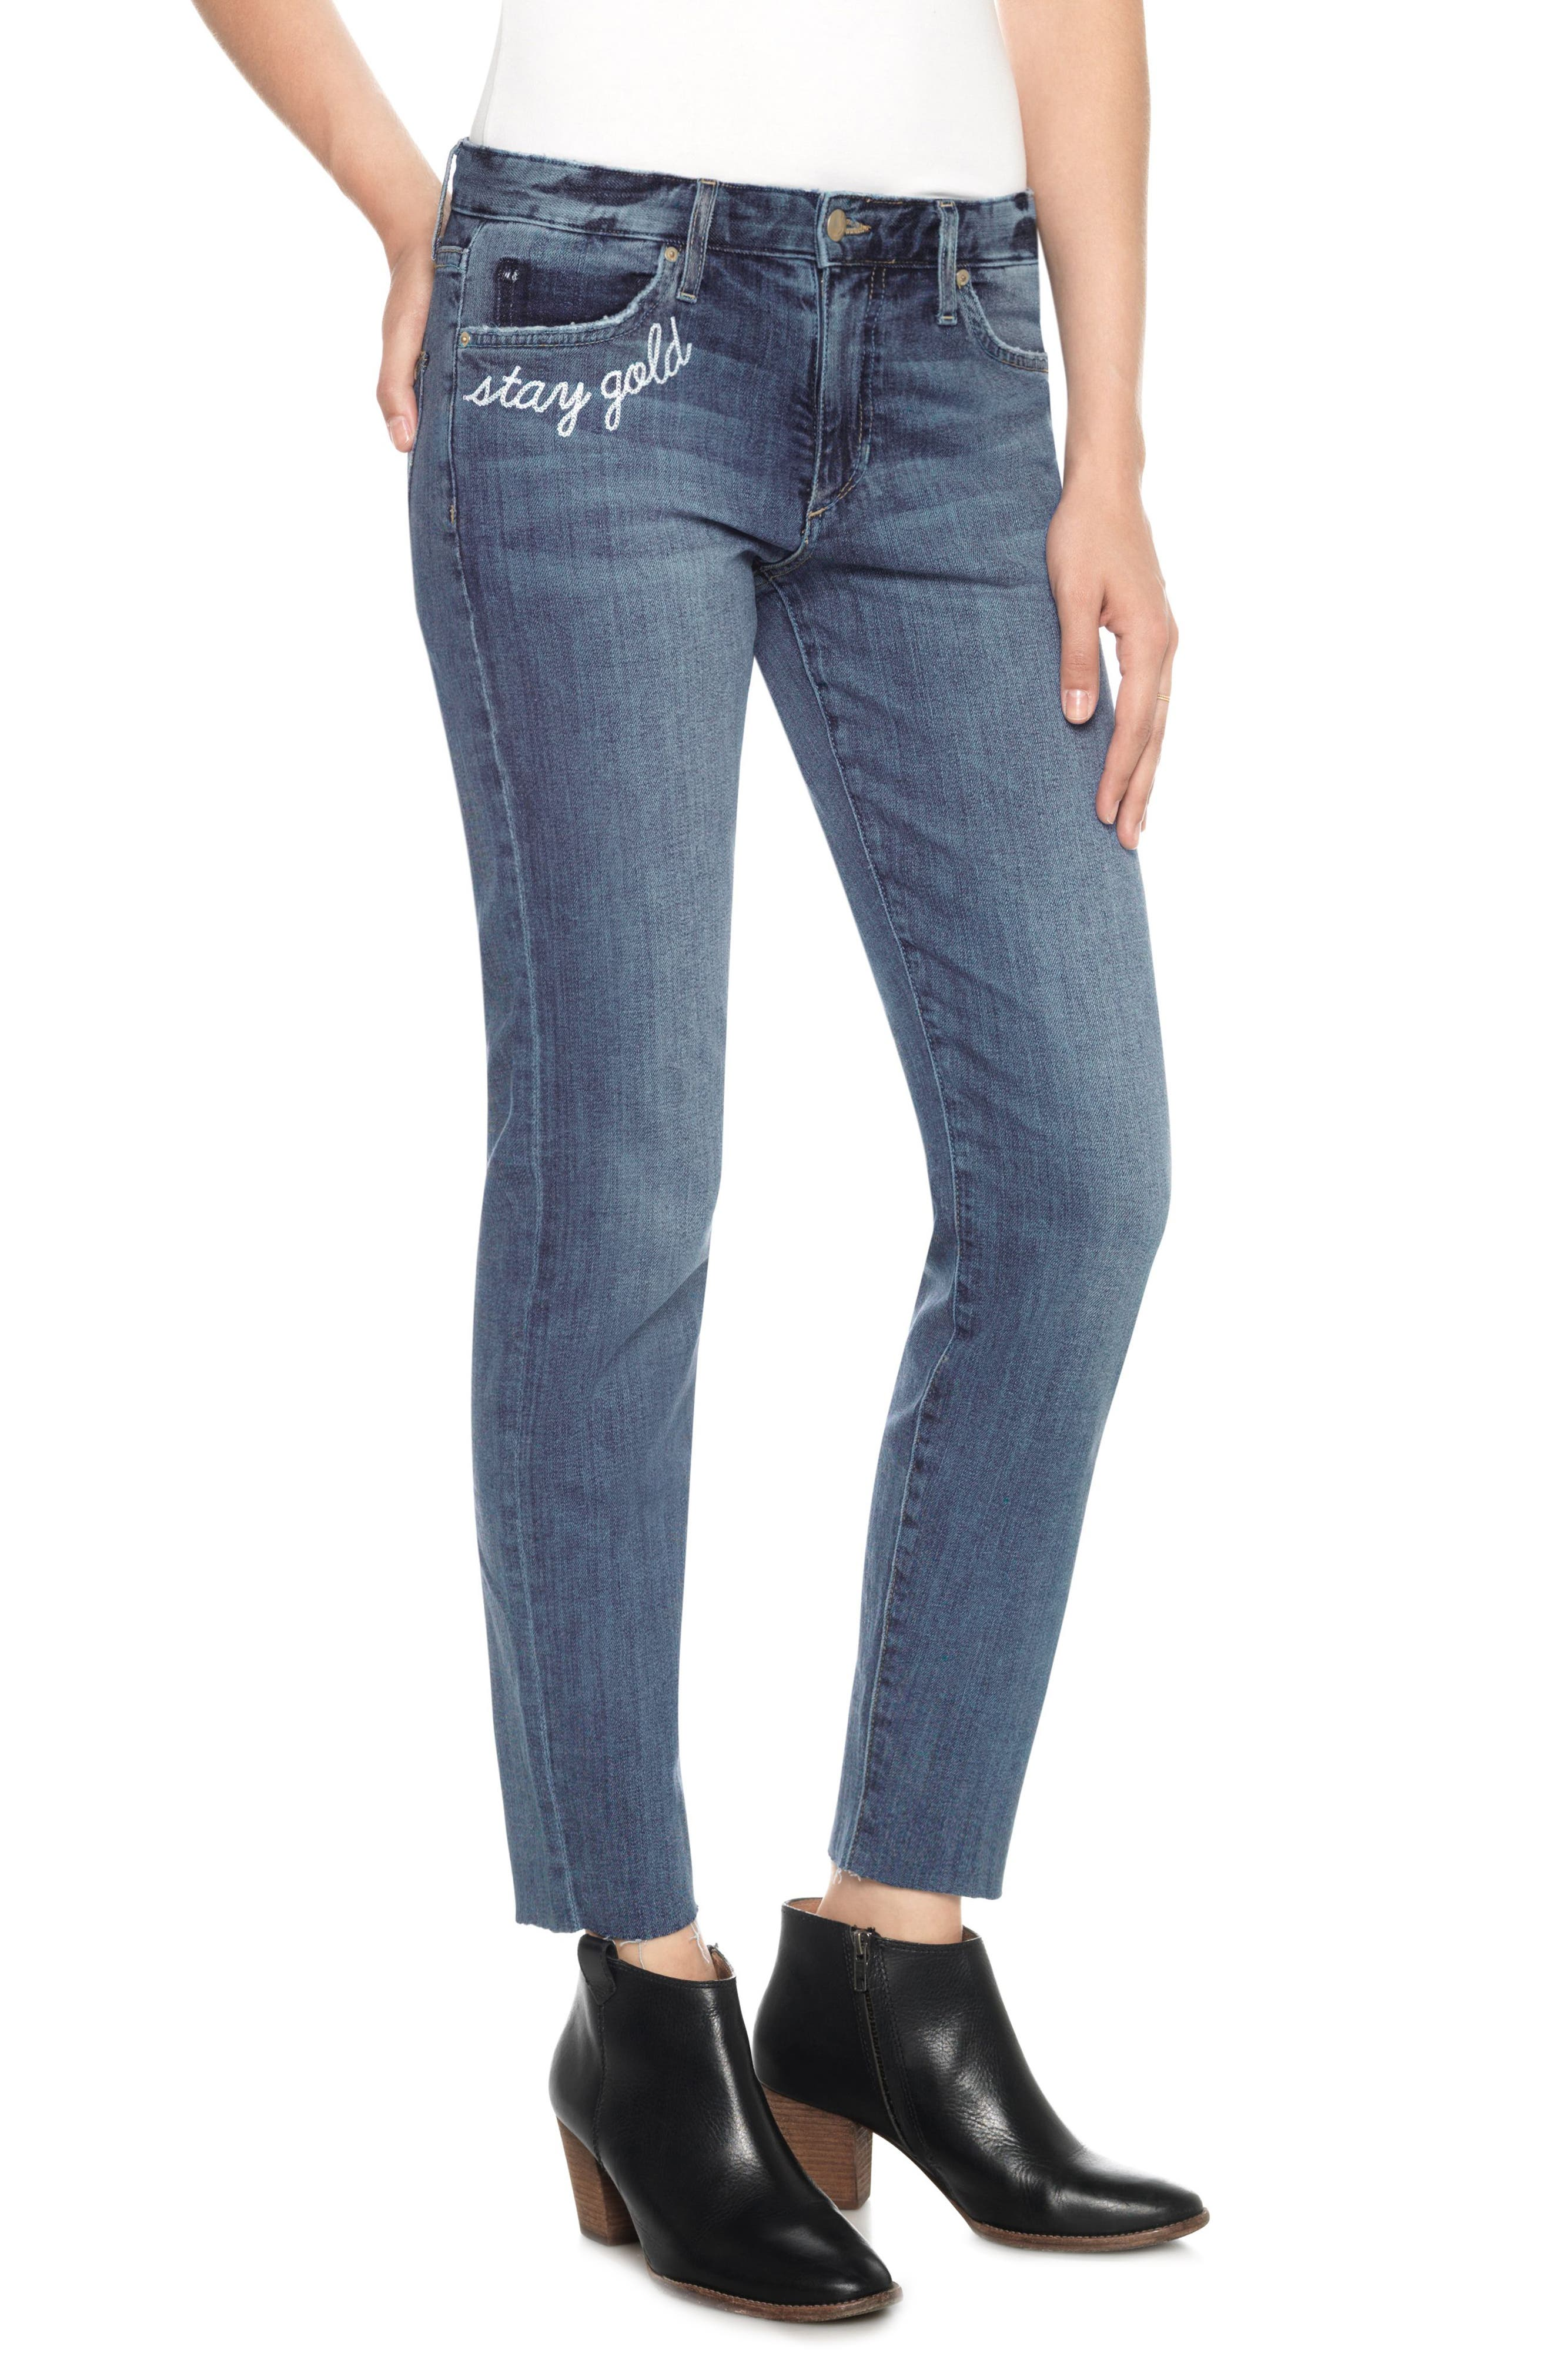 Alternate Image 1 Selected - Joe's The Smith Stay Gold Ankle Jeans (Clenna)